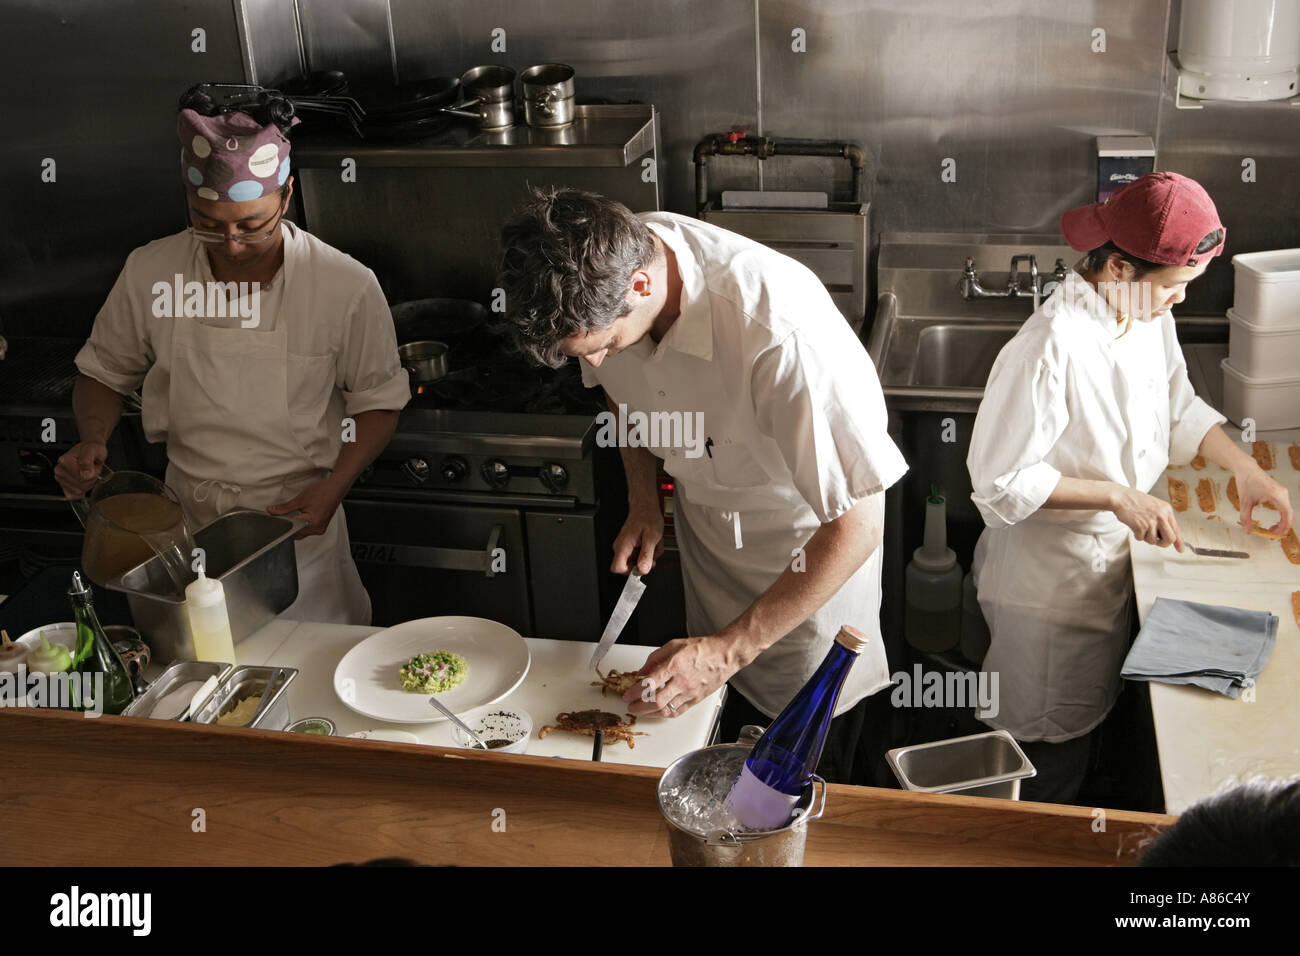 Three People Working In Kitchen Front View Stock Photo